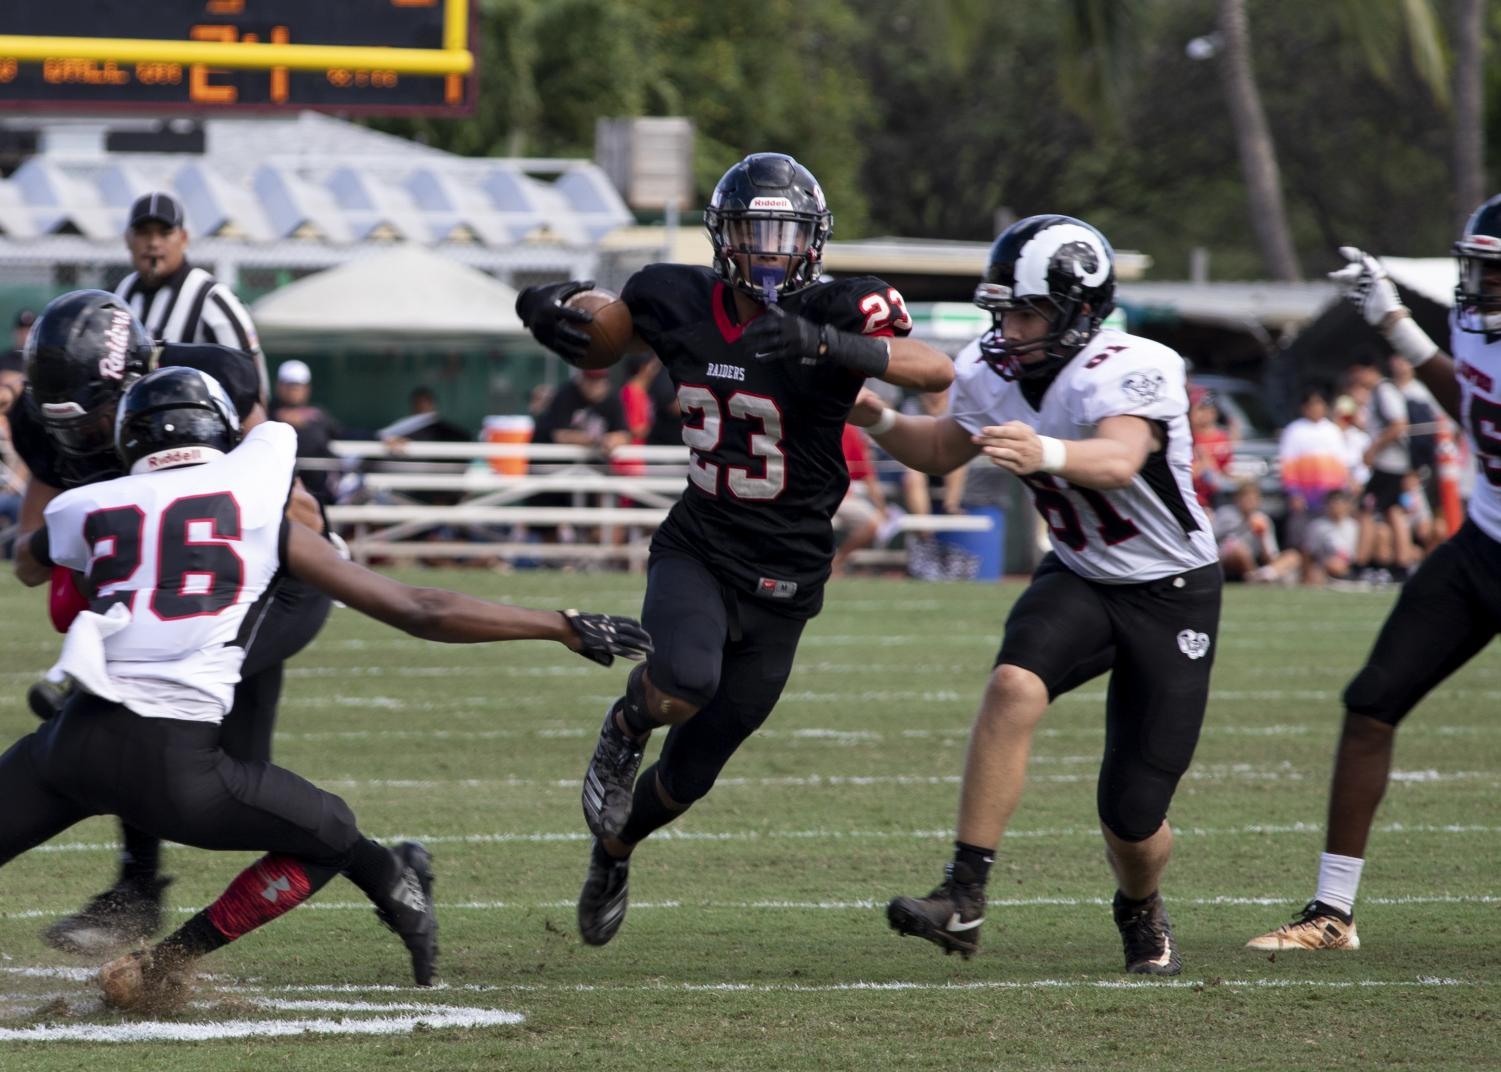 Lanakila Pei '20 returns a punt return against Radford during the Homecoming Game.